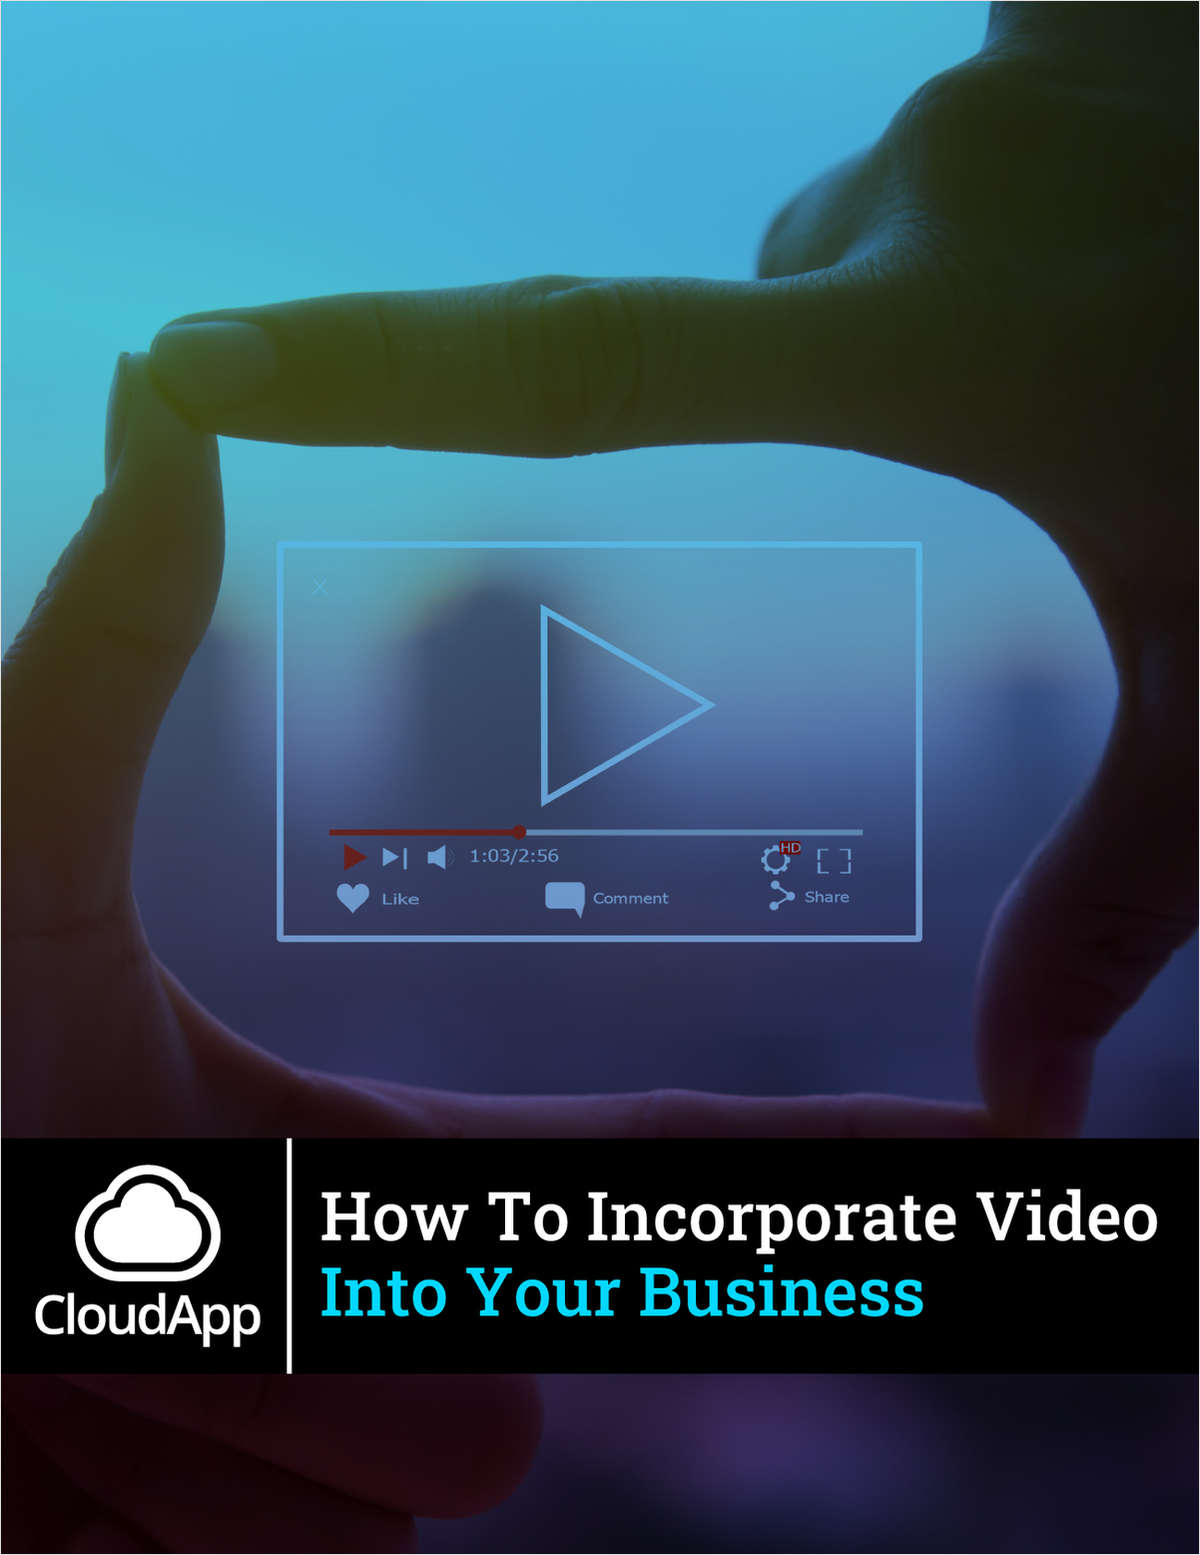 How to Incorporate Video Into Your Business